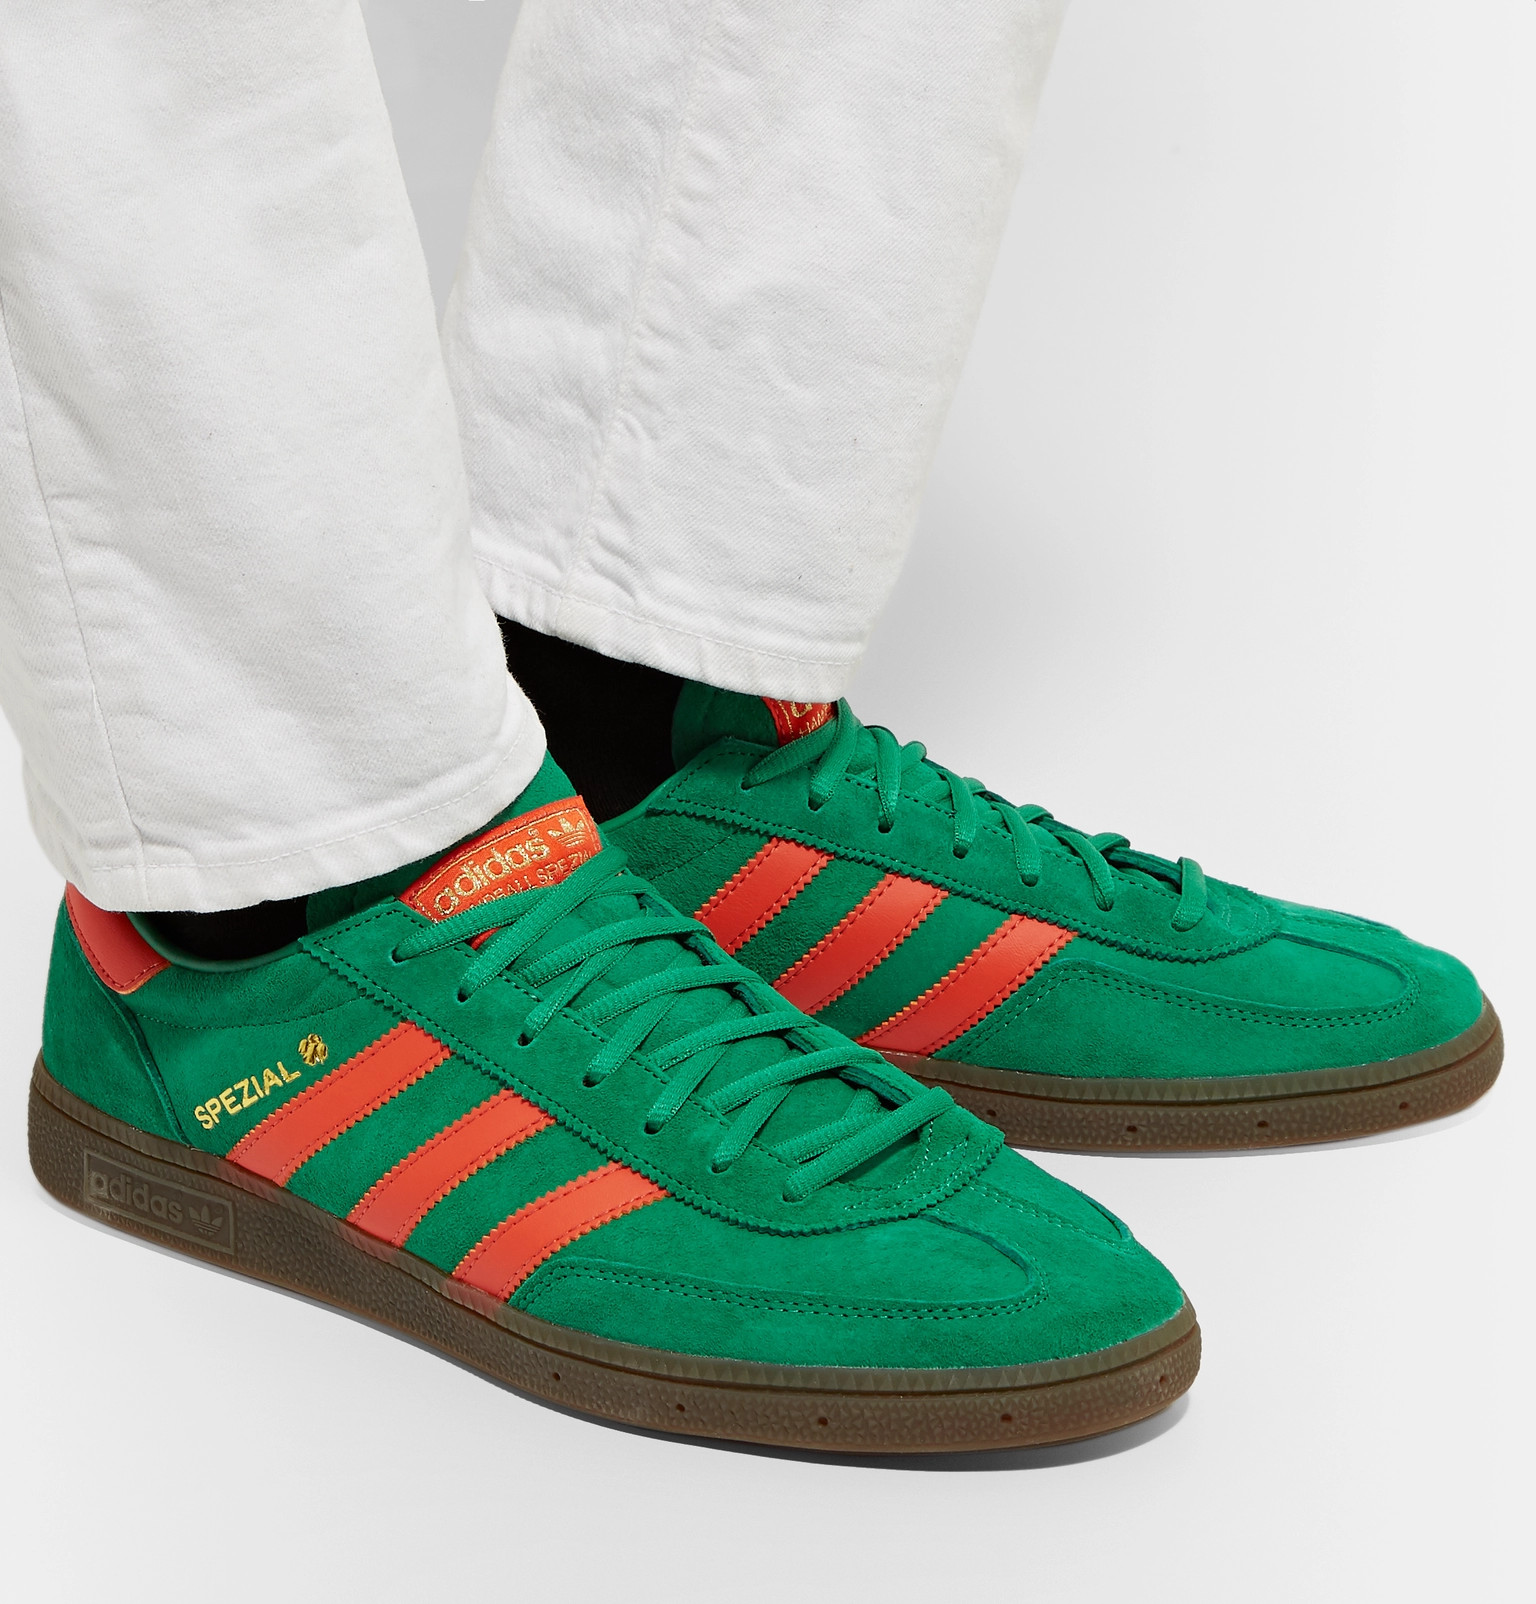 b66bfd35d adidas Originals - Handball Spezial Leather-Trimmed Suede Sneakers